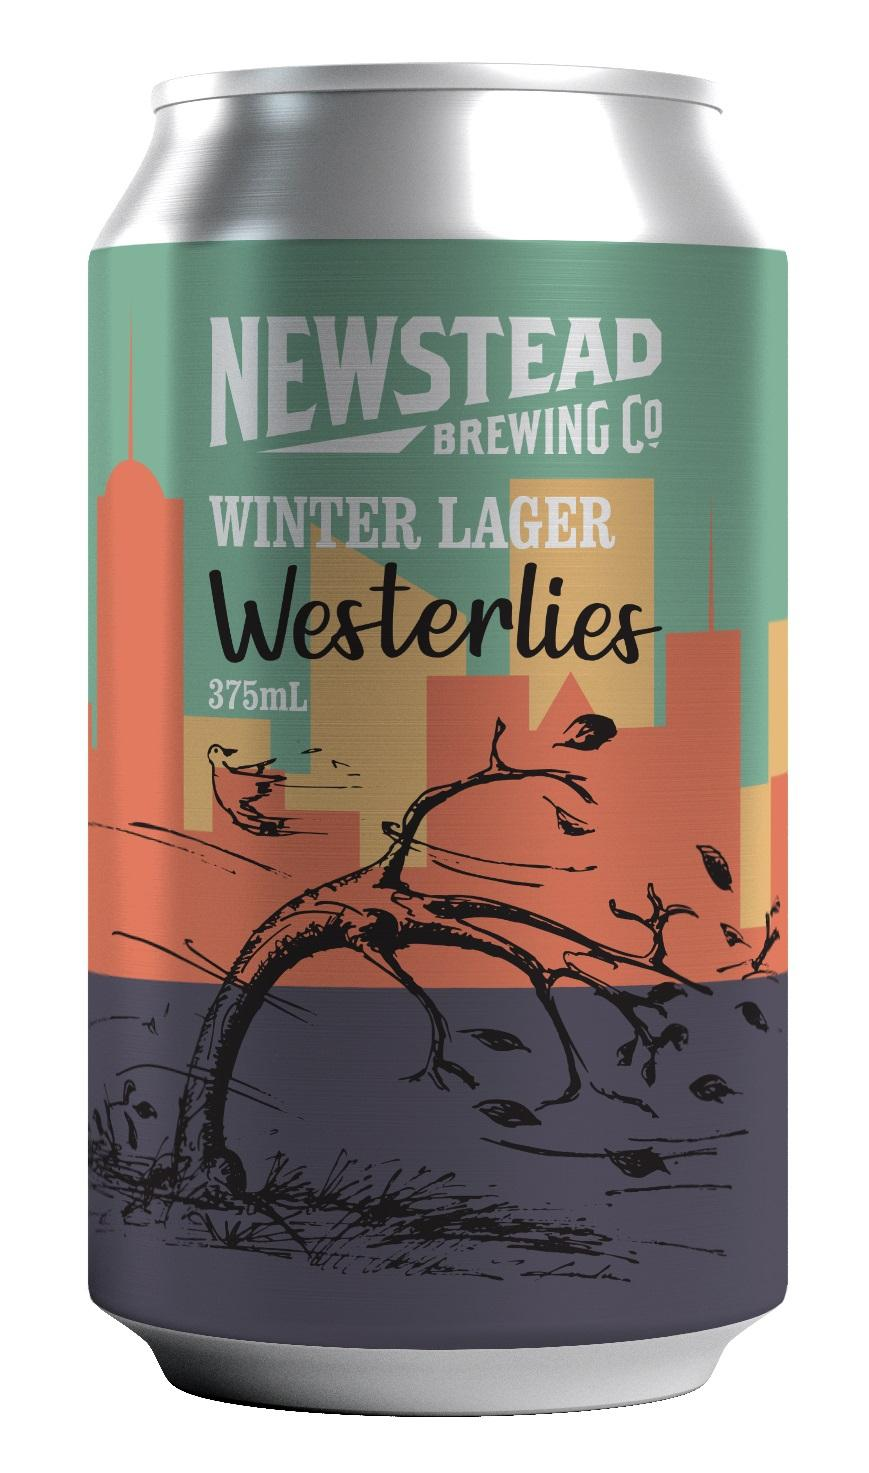 Newstead Brewing's Winter Lager Westerlies